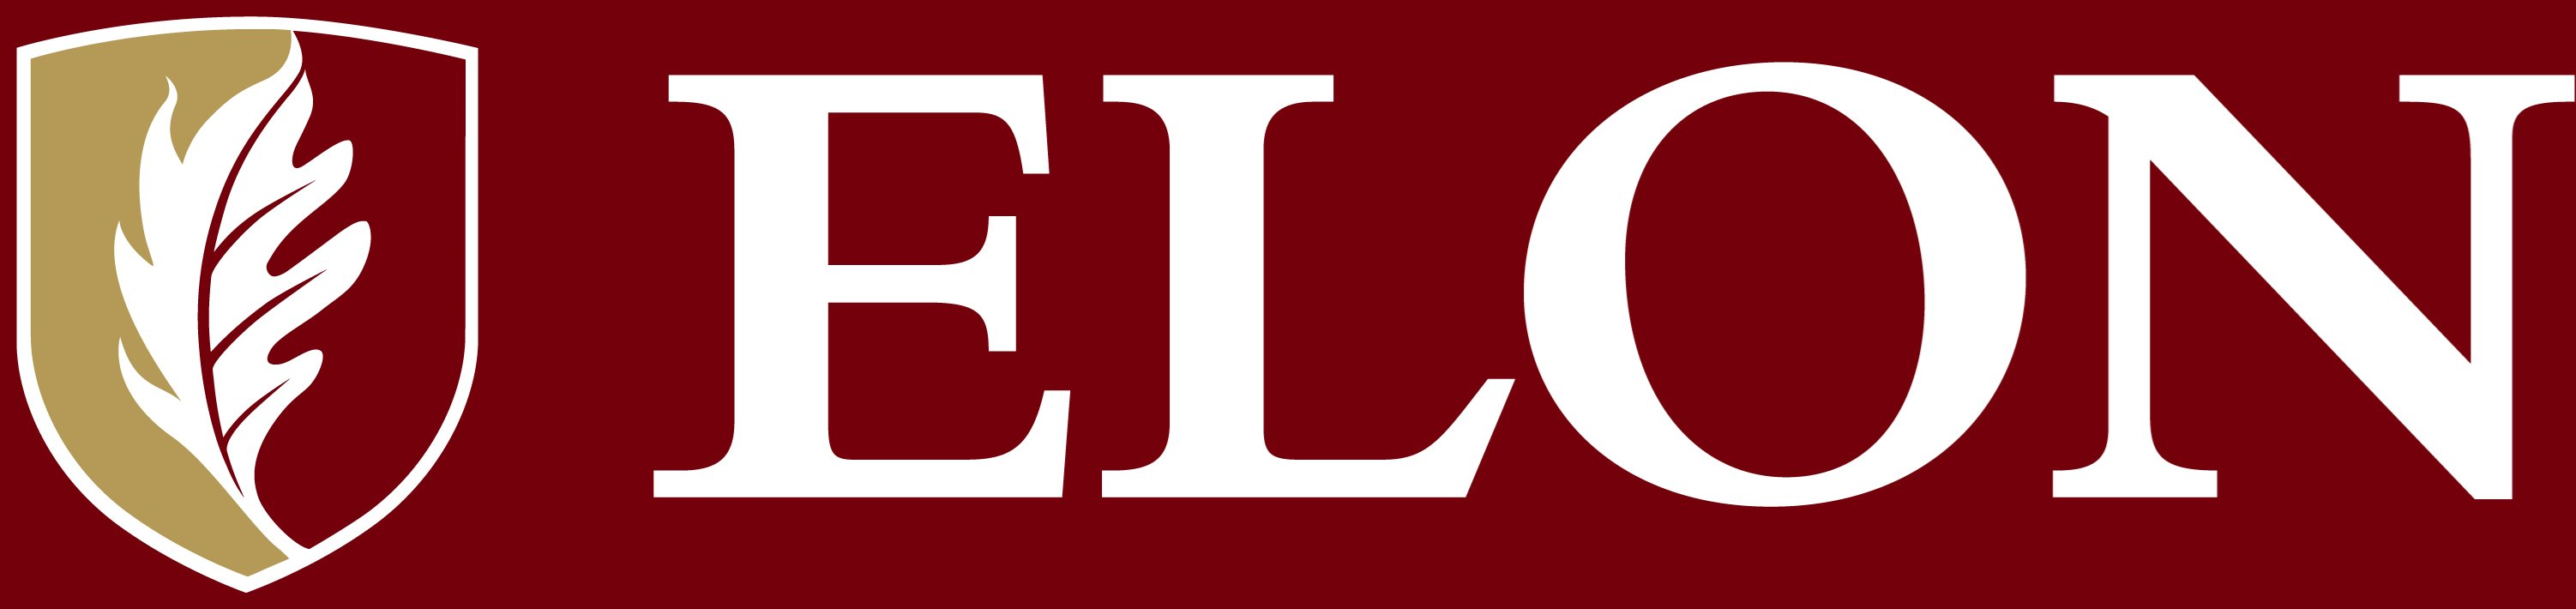 Elon University secondary signature example